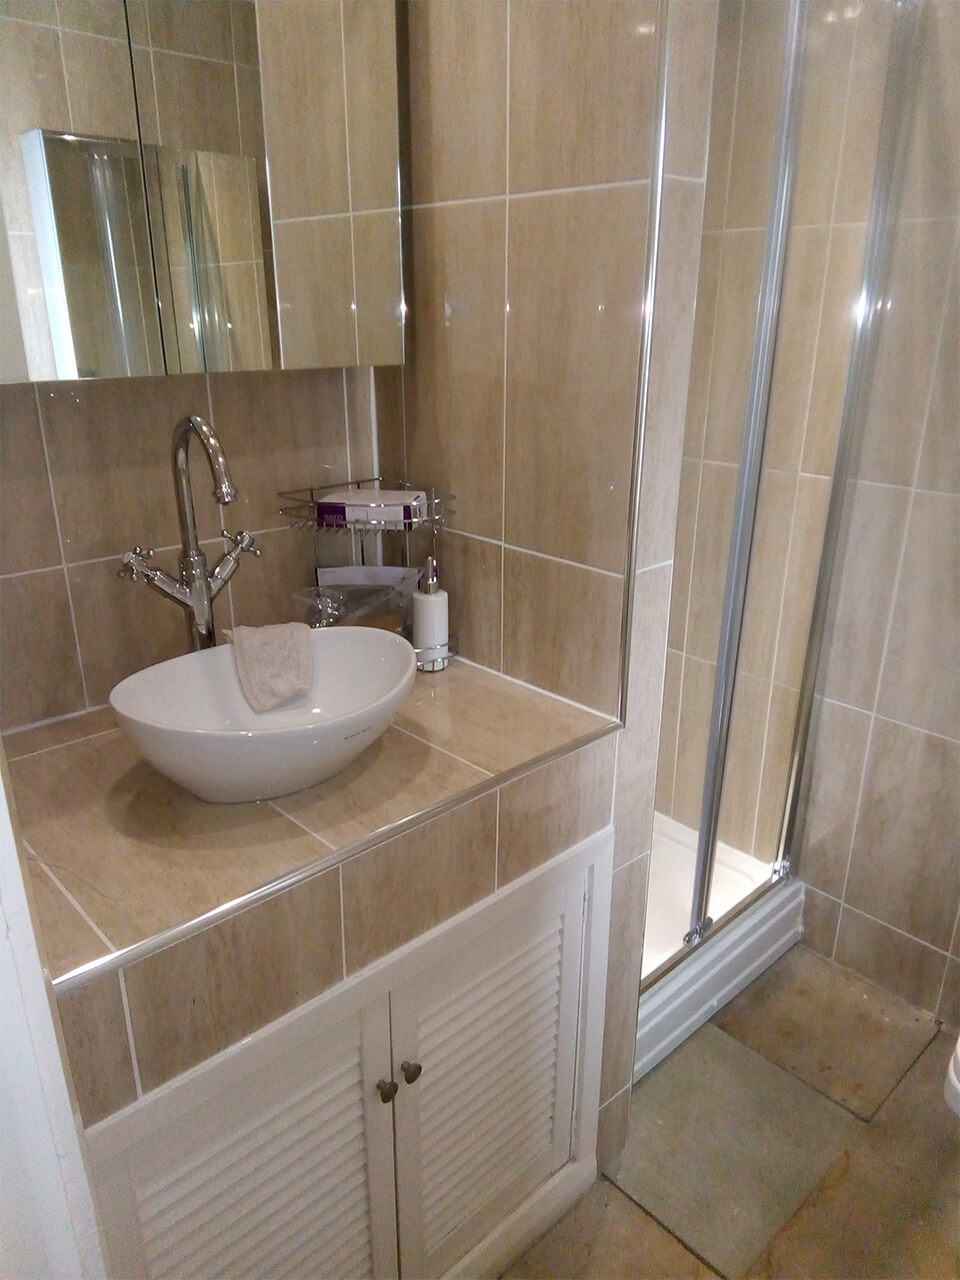 ashmore_plumbing_building_blackpool_bathroom_installation_13